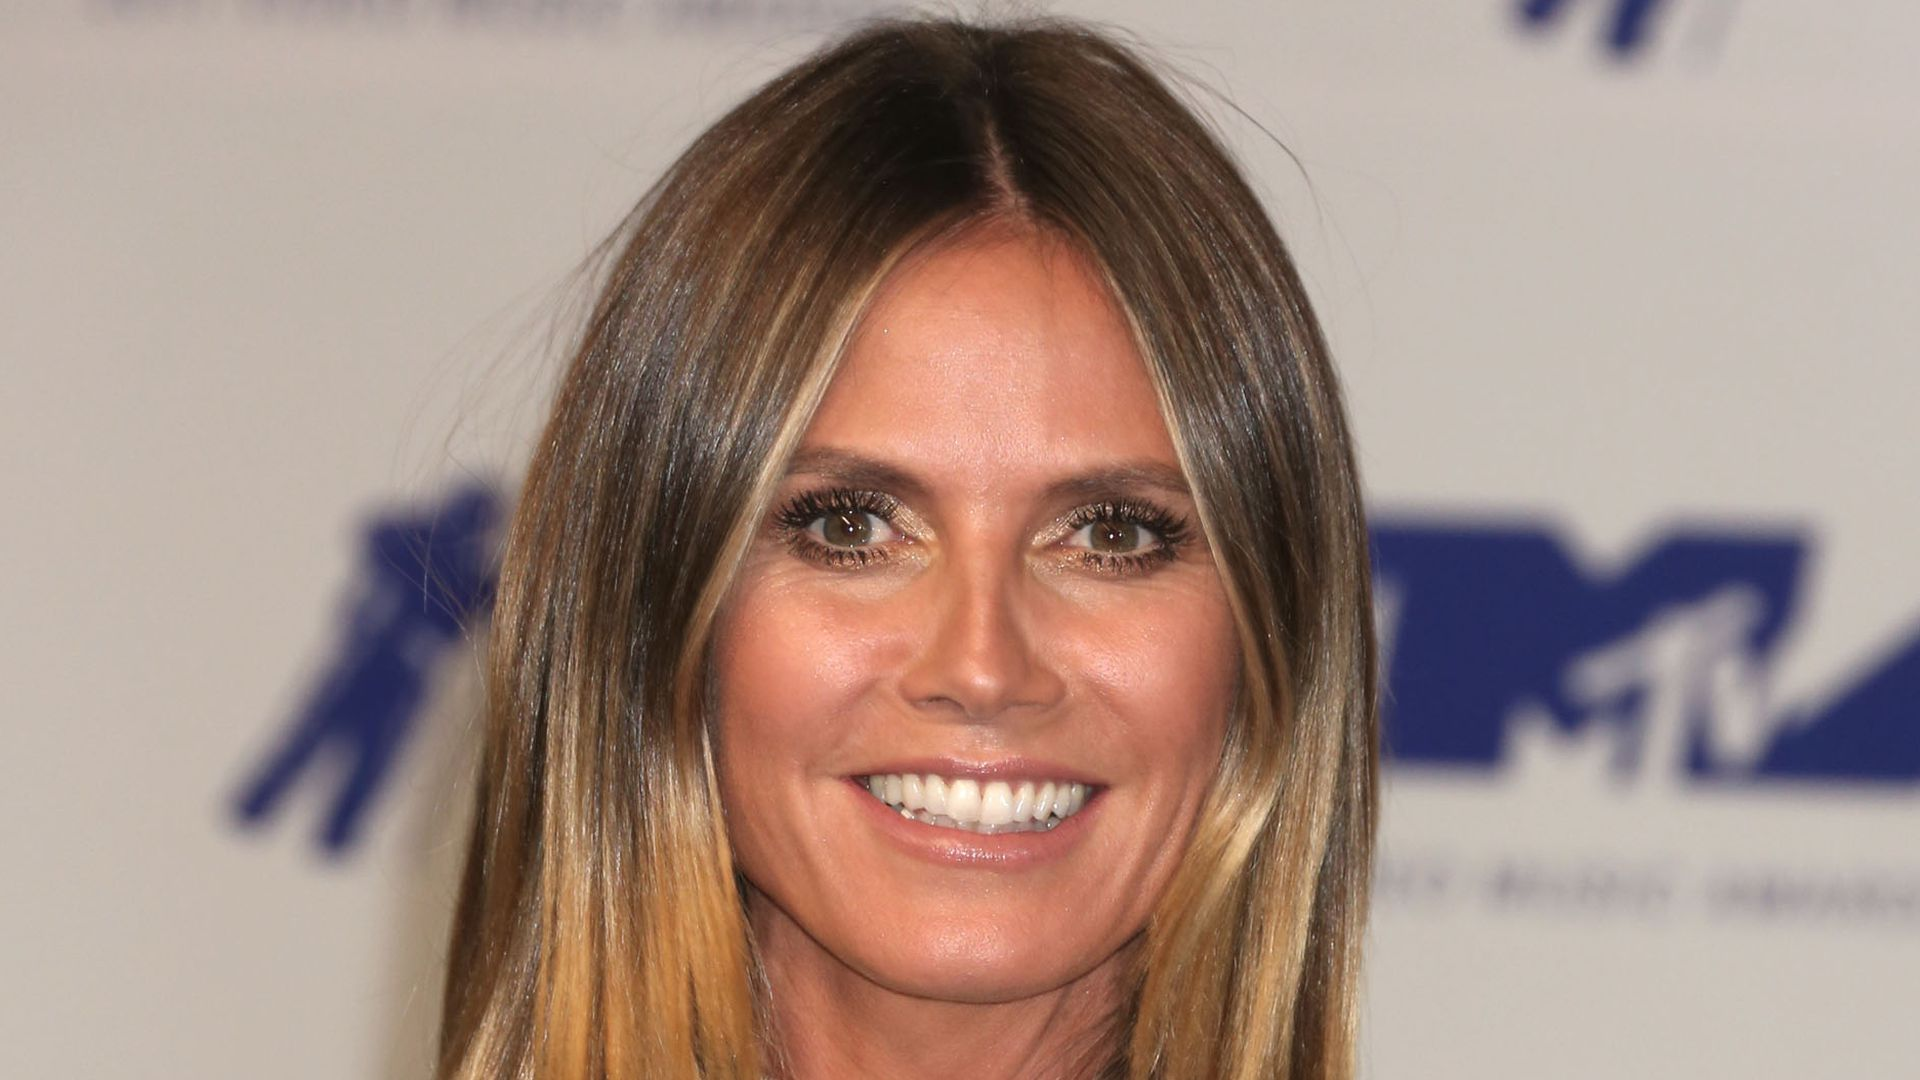 xl boobies heidi klum berrascht bei vmas mit m rder m psen. Black Bedroom Furniture Sets. Home Design Ideas